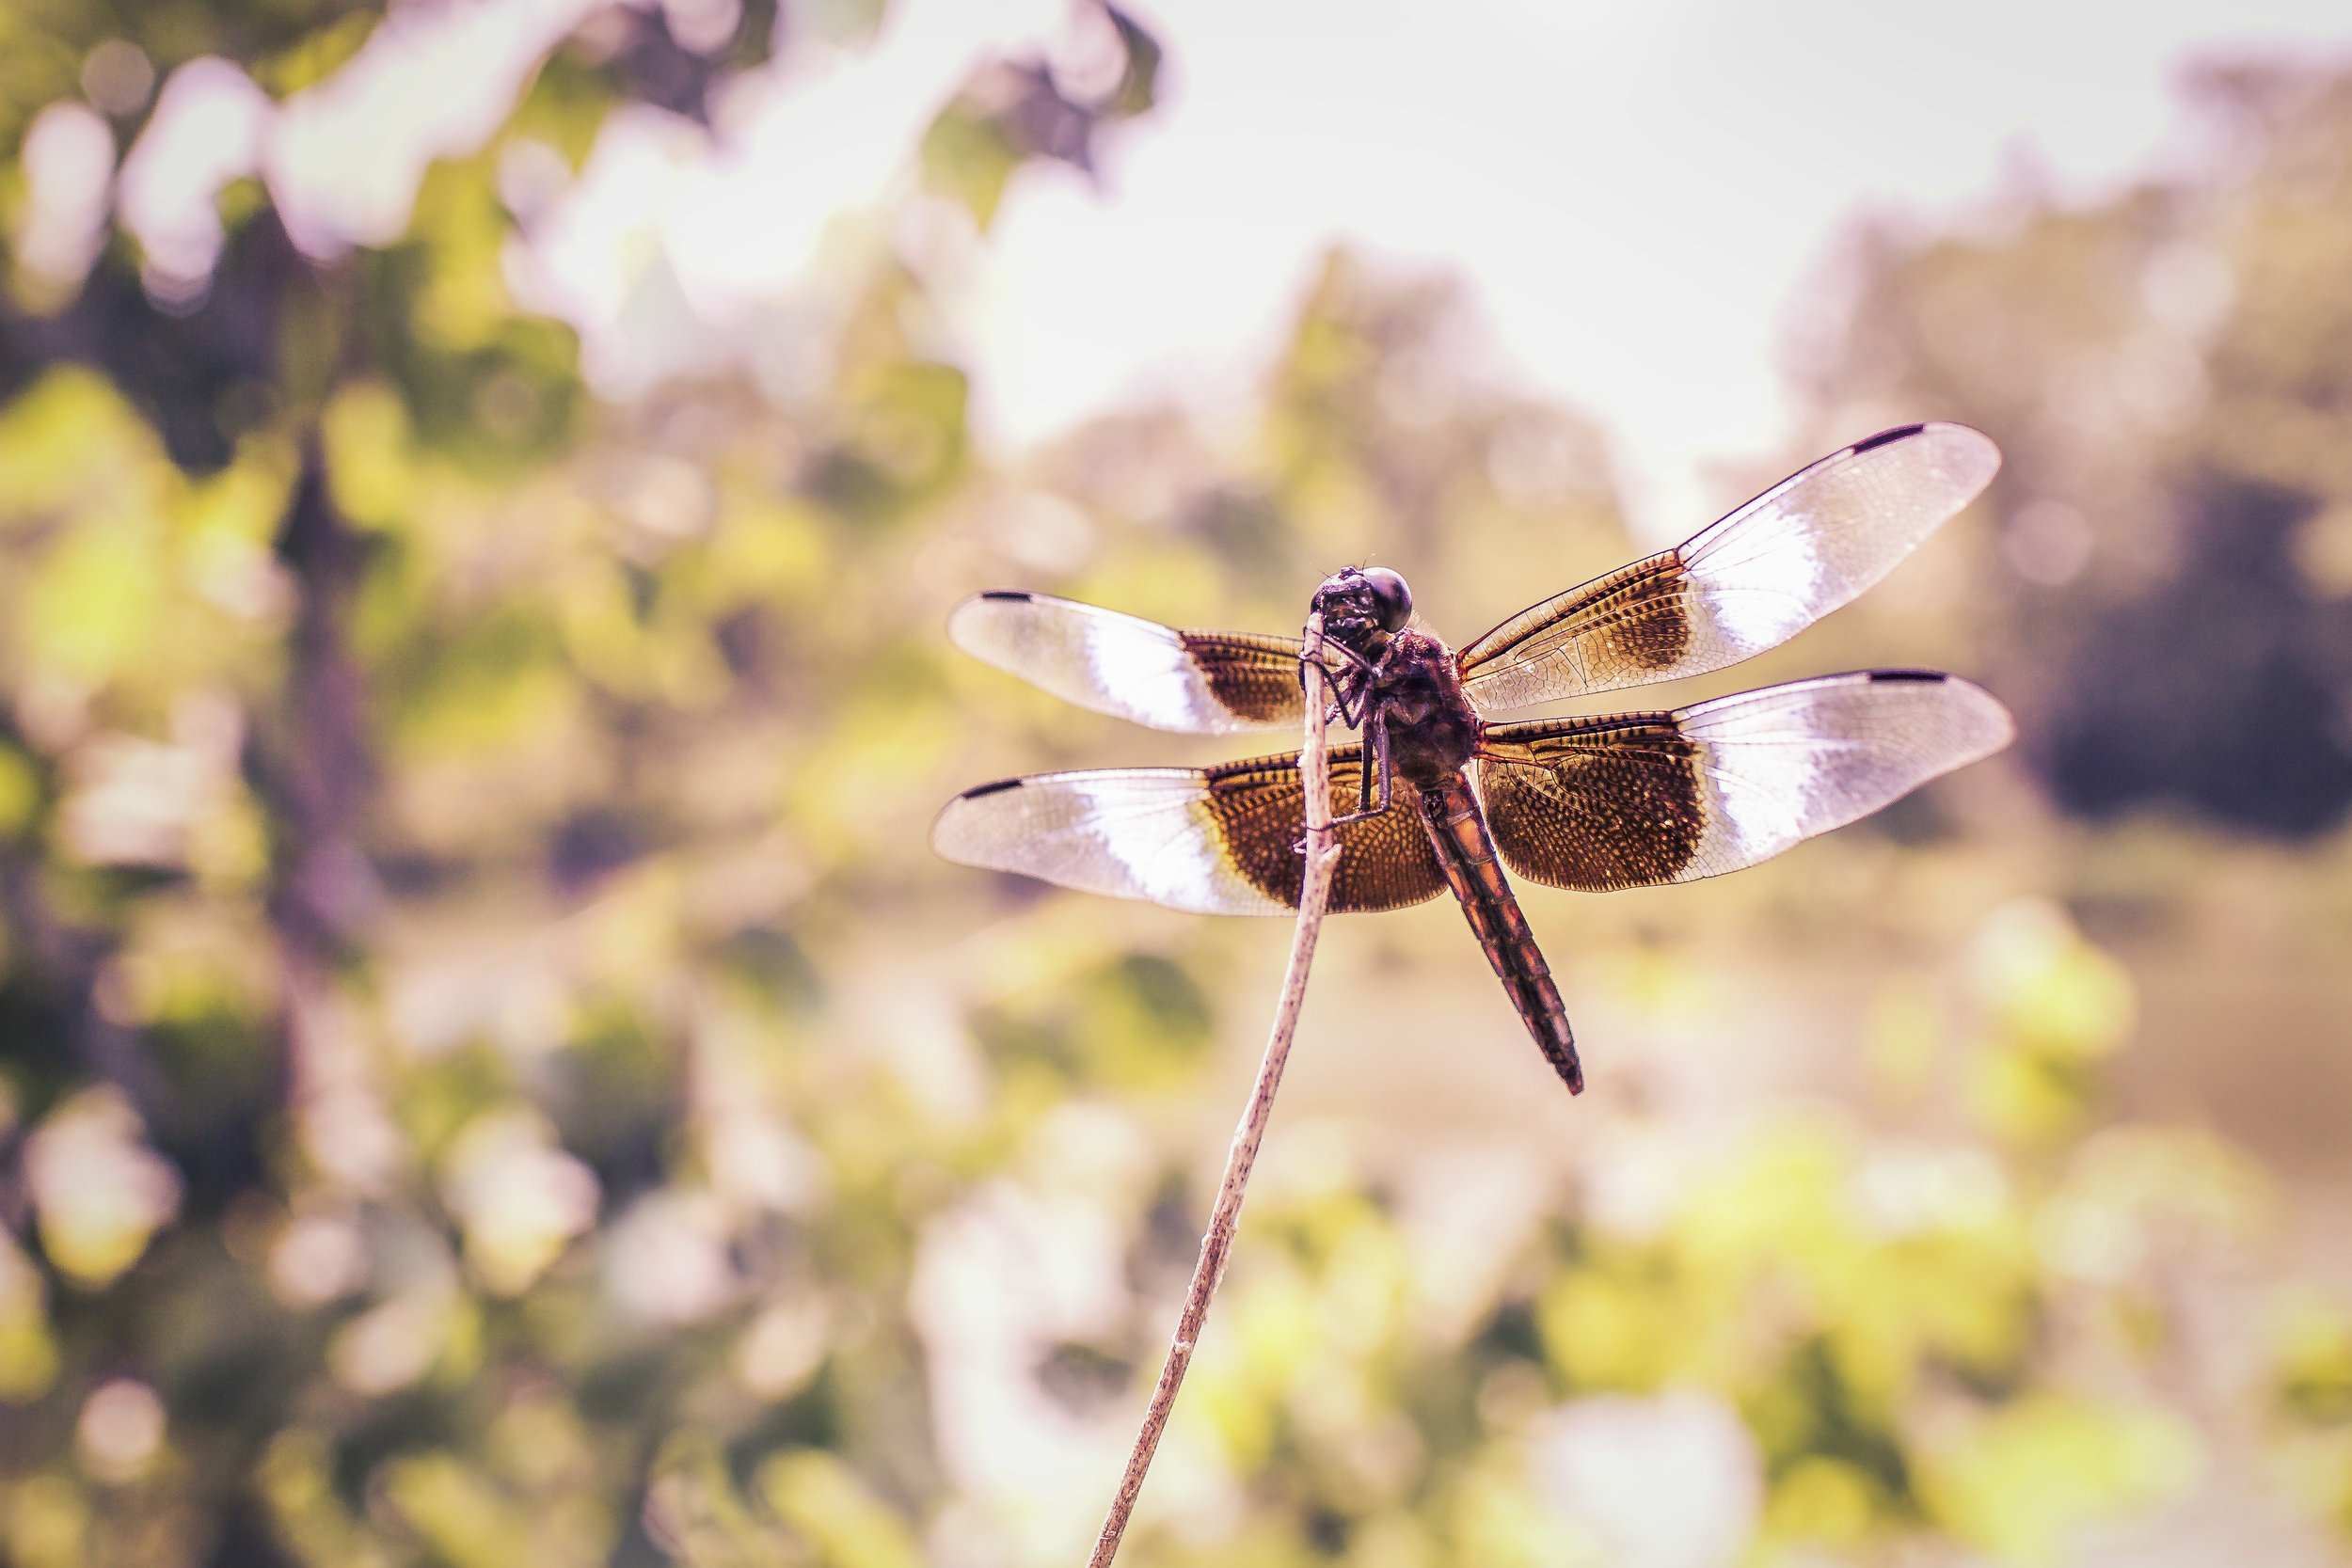 dragon-fly-landing-on-stem-waiting